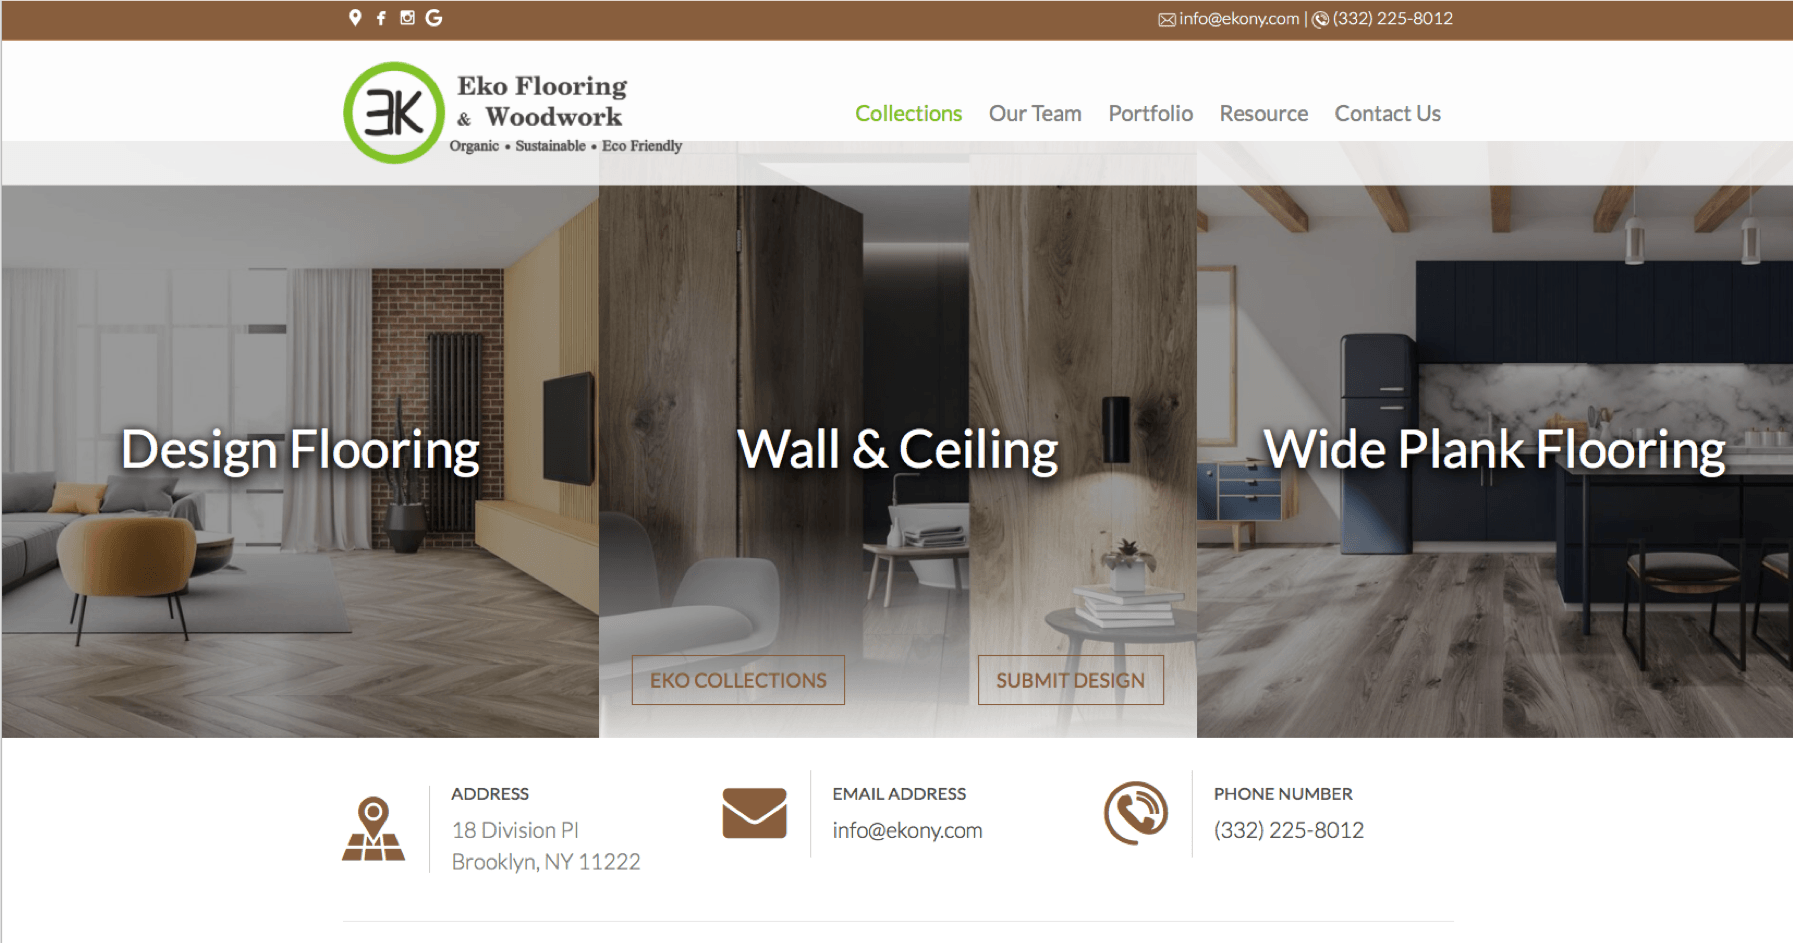 eko flooring and woodwork